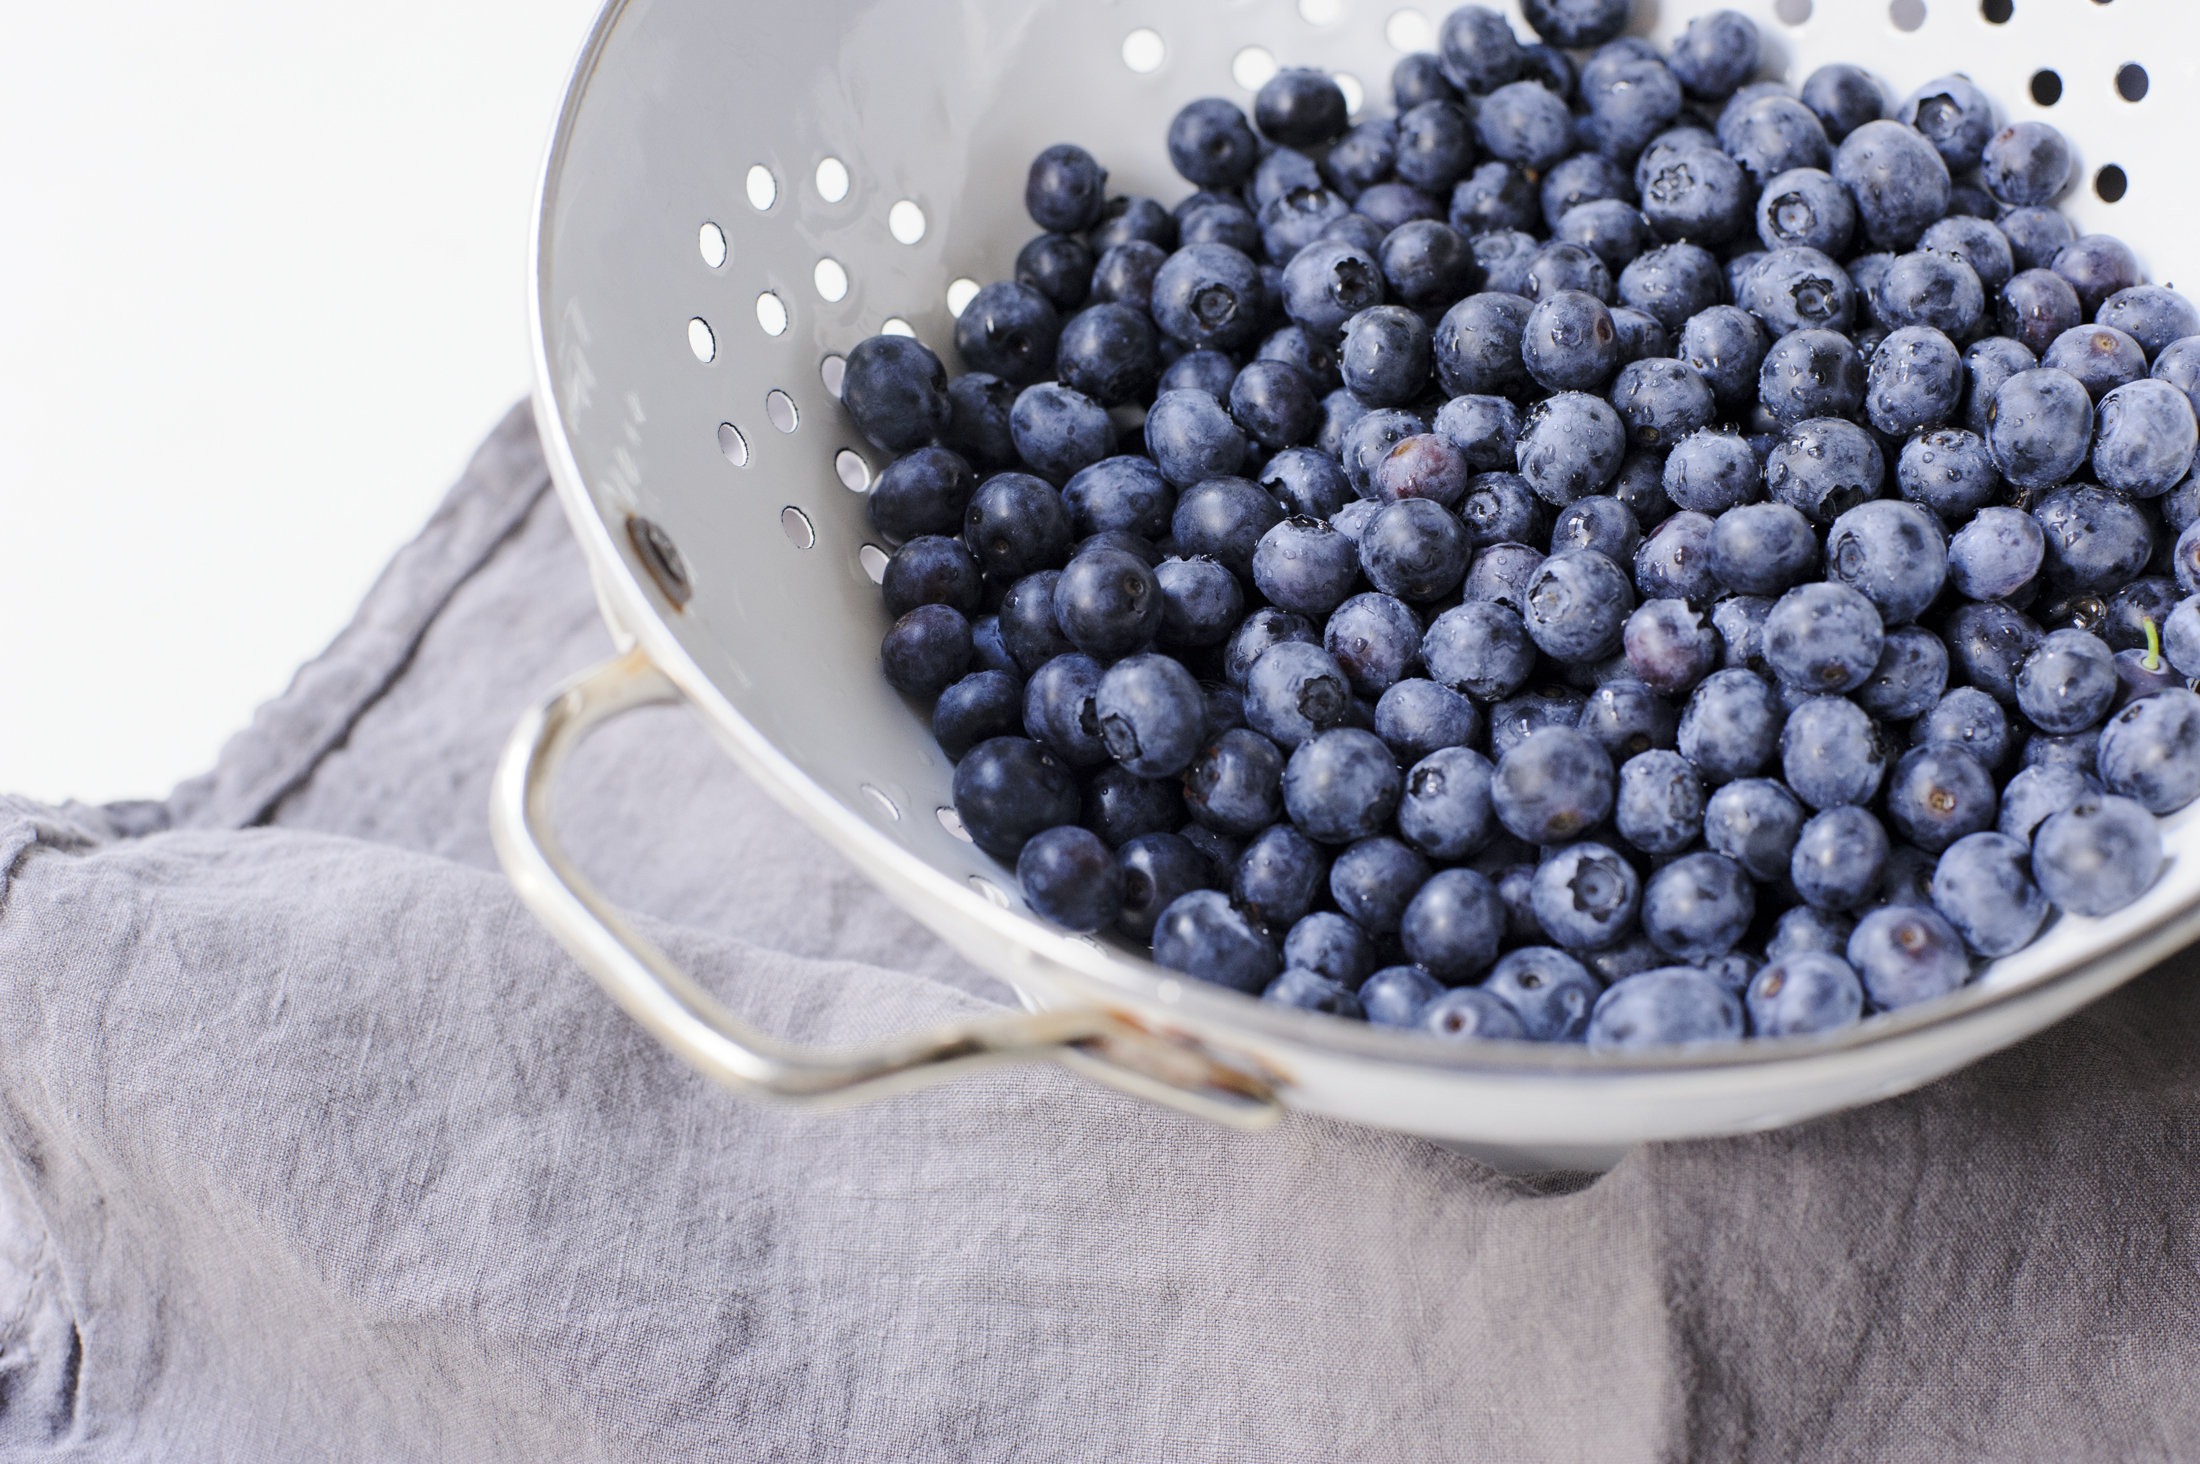 carmen-ladipo_blueberries-2.jpg